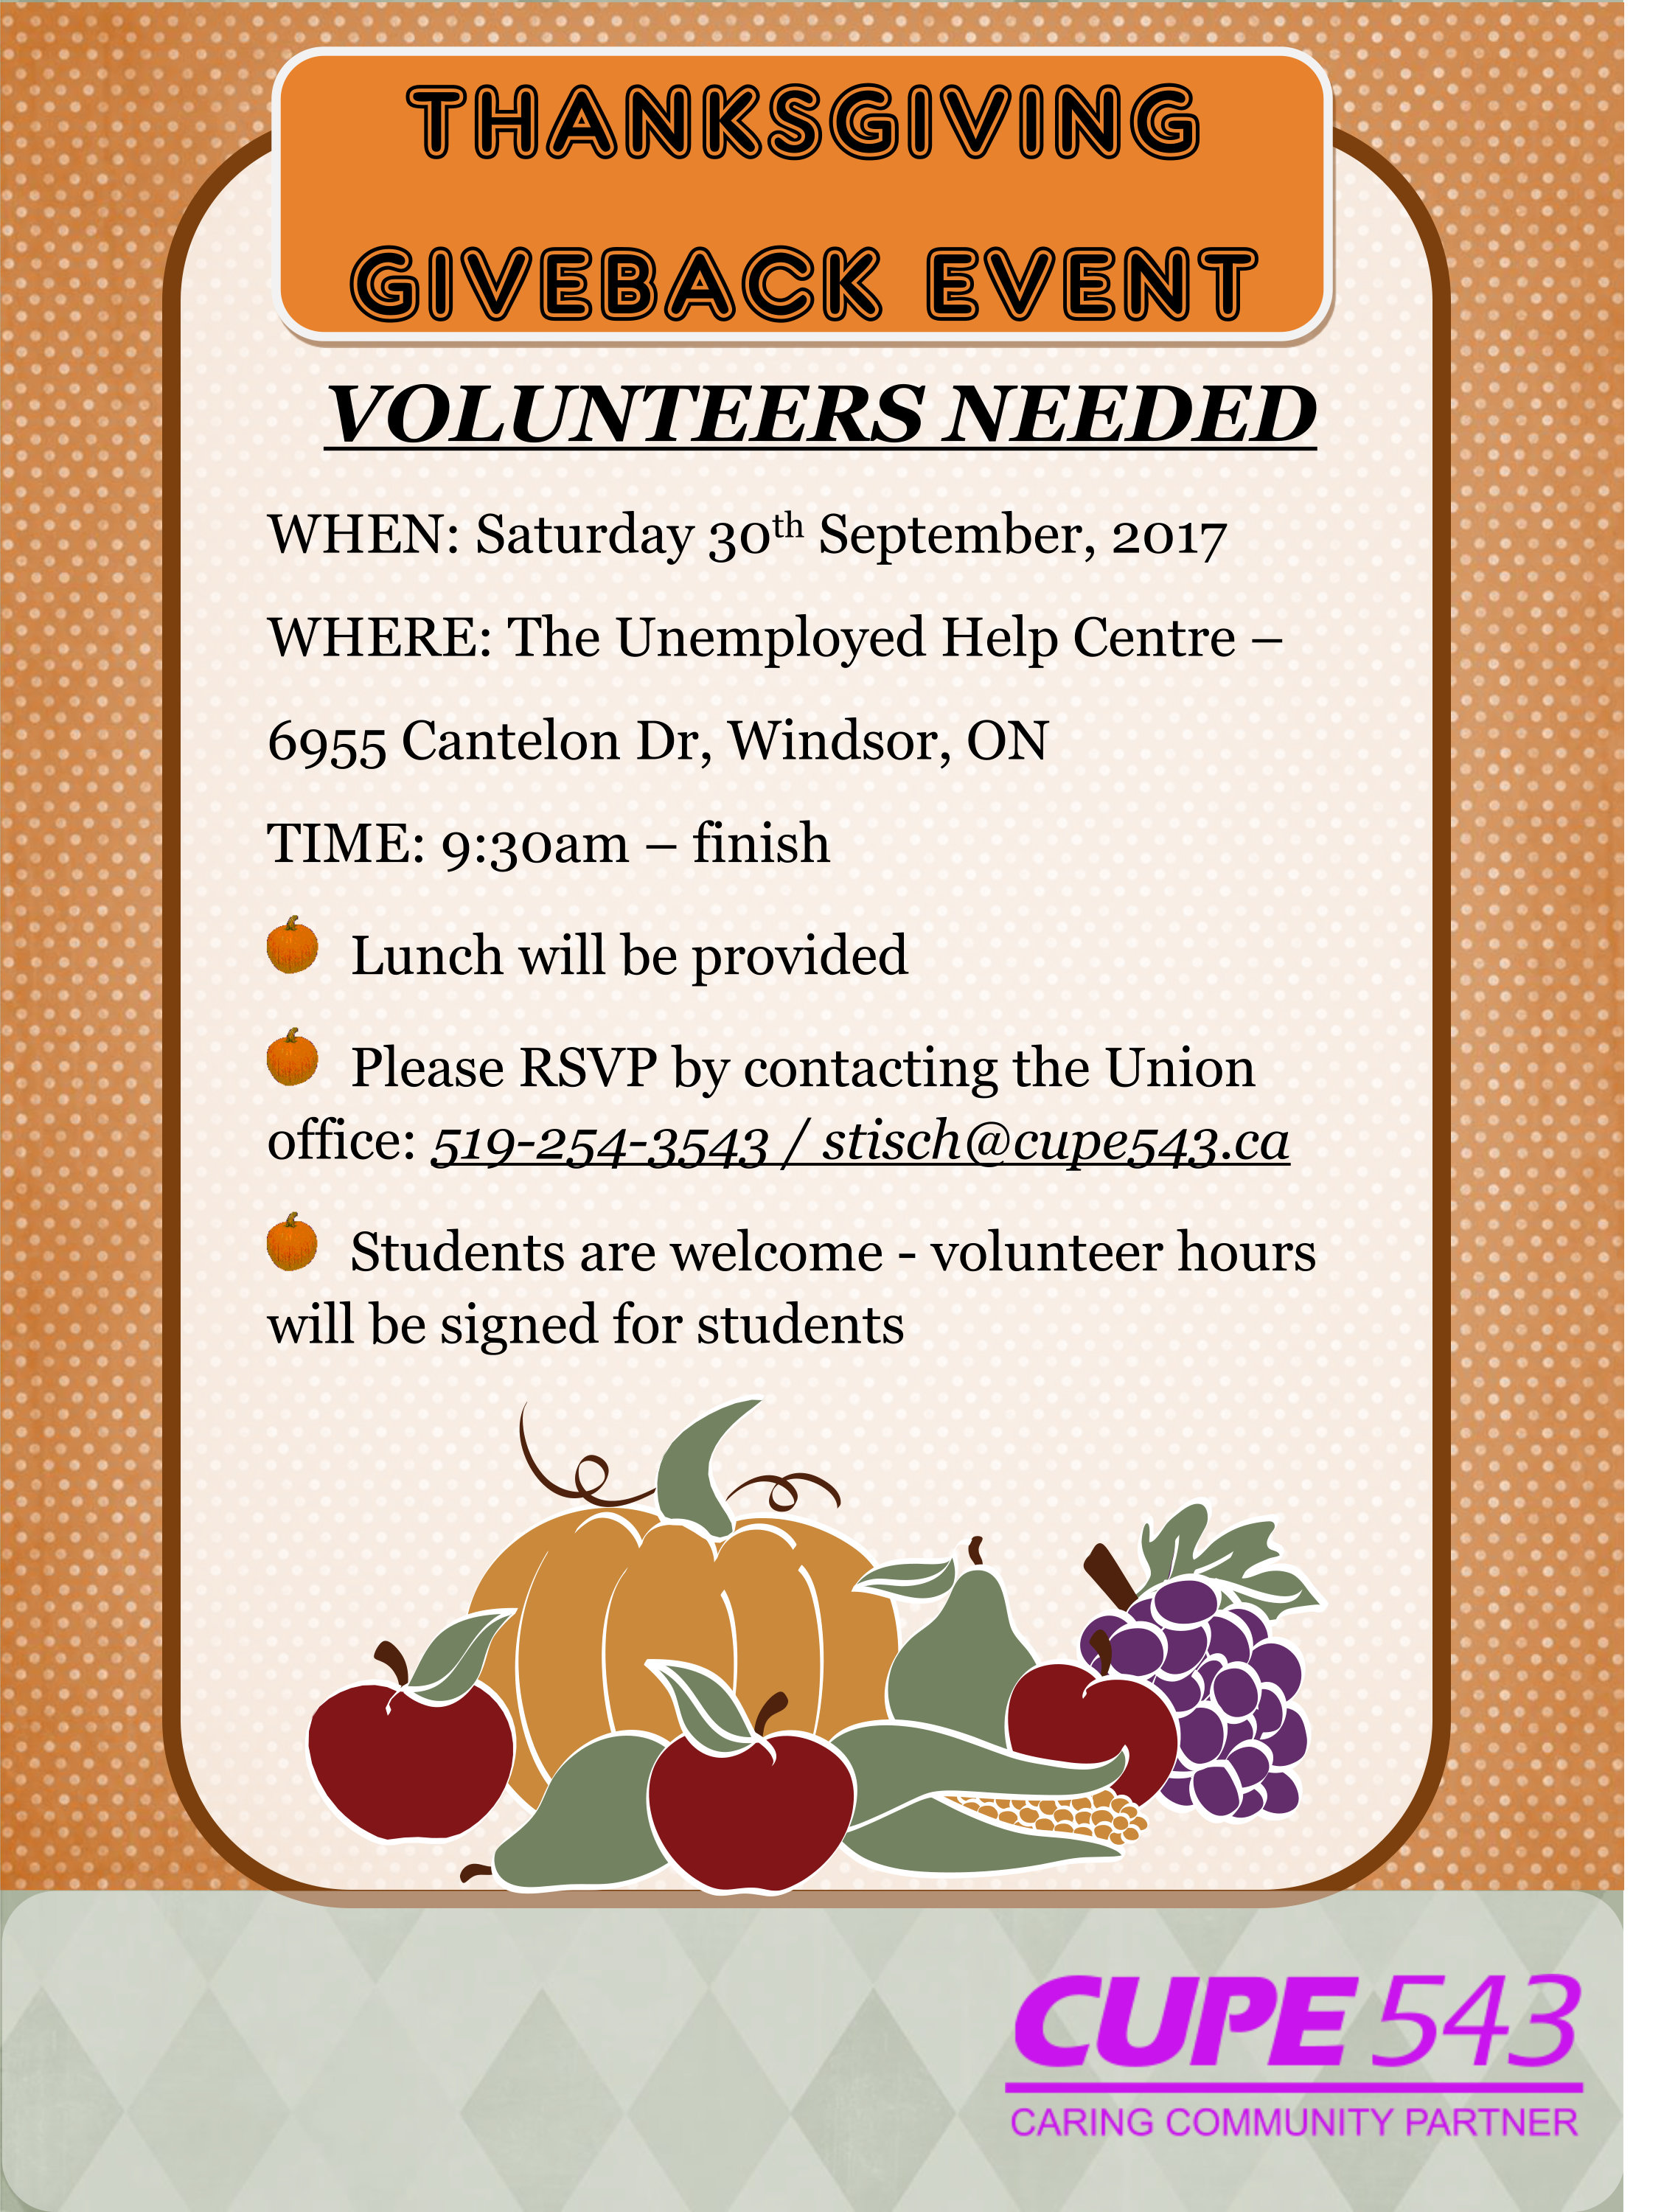 Thanksgiving Giveback - Volunteer Event @ Unemployed Help Centre | Windsor | Ontario | Canada